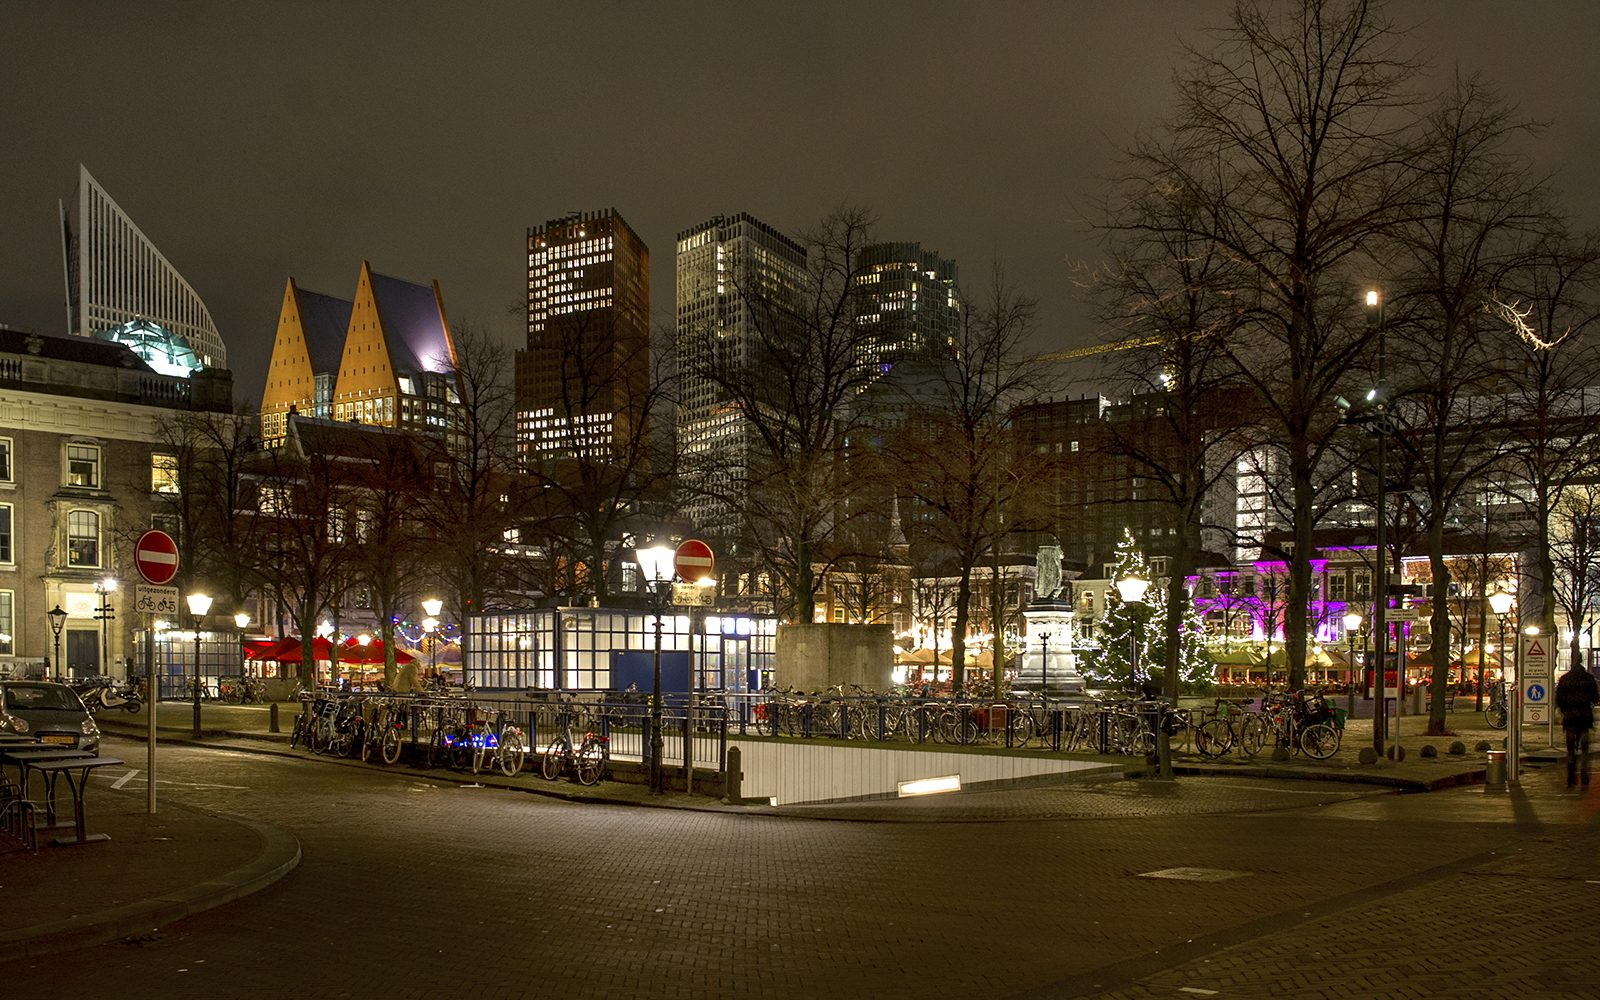 The Hague, Plein